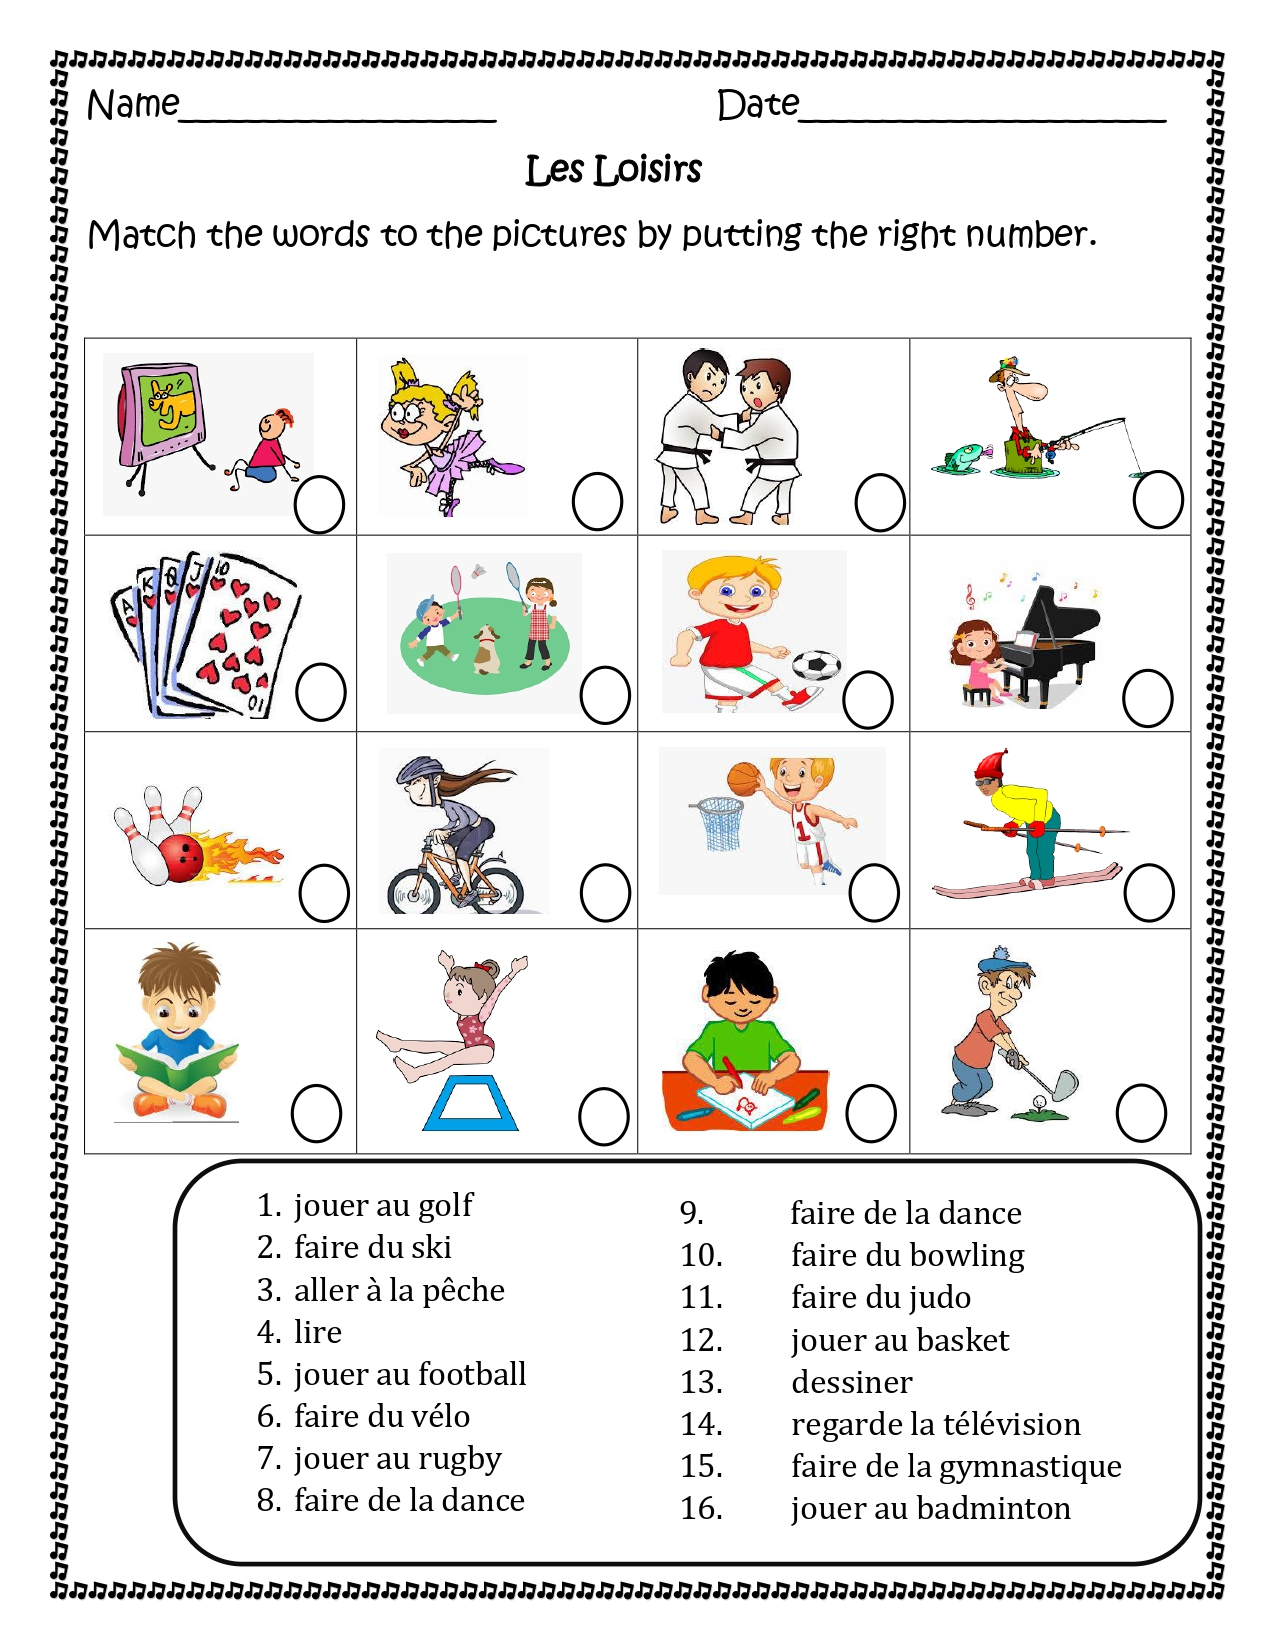 Les Loisirs French Free Time Activities Worksheets For